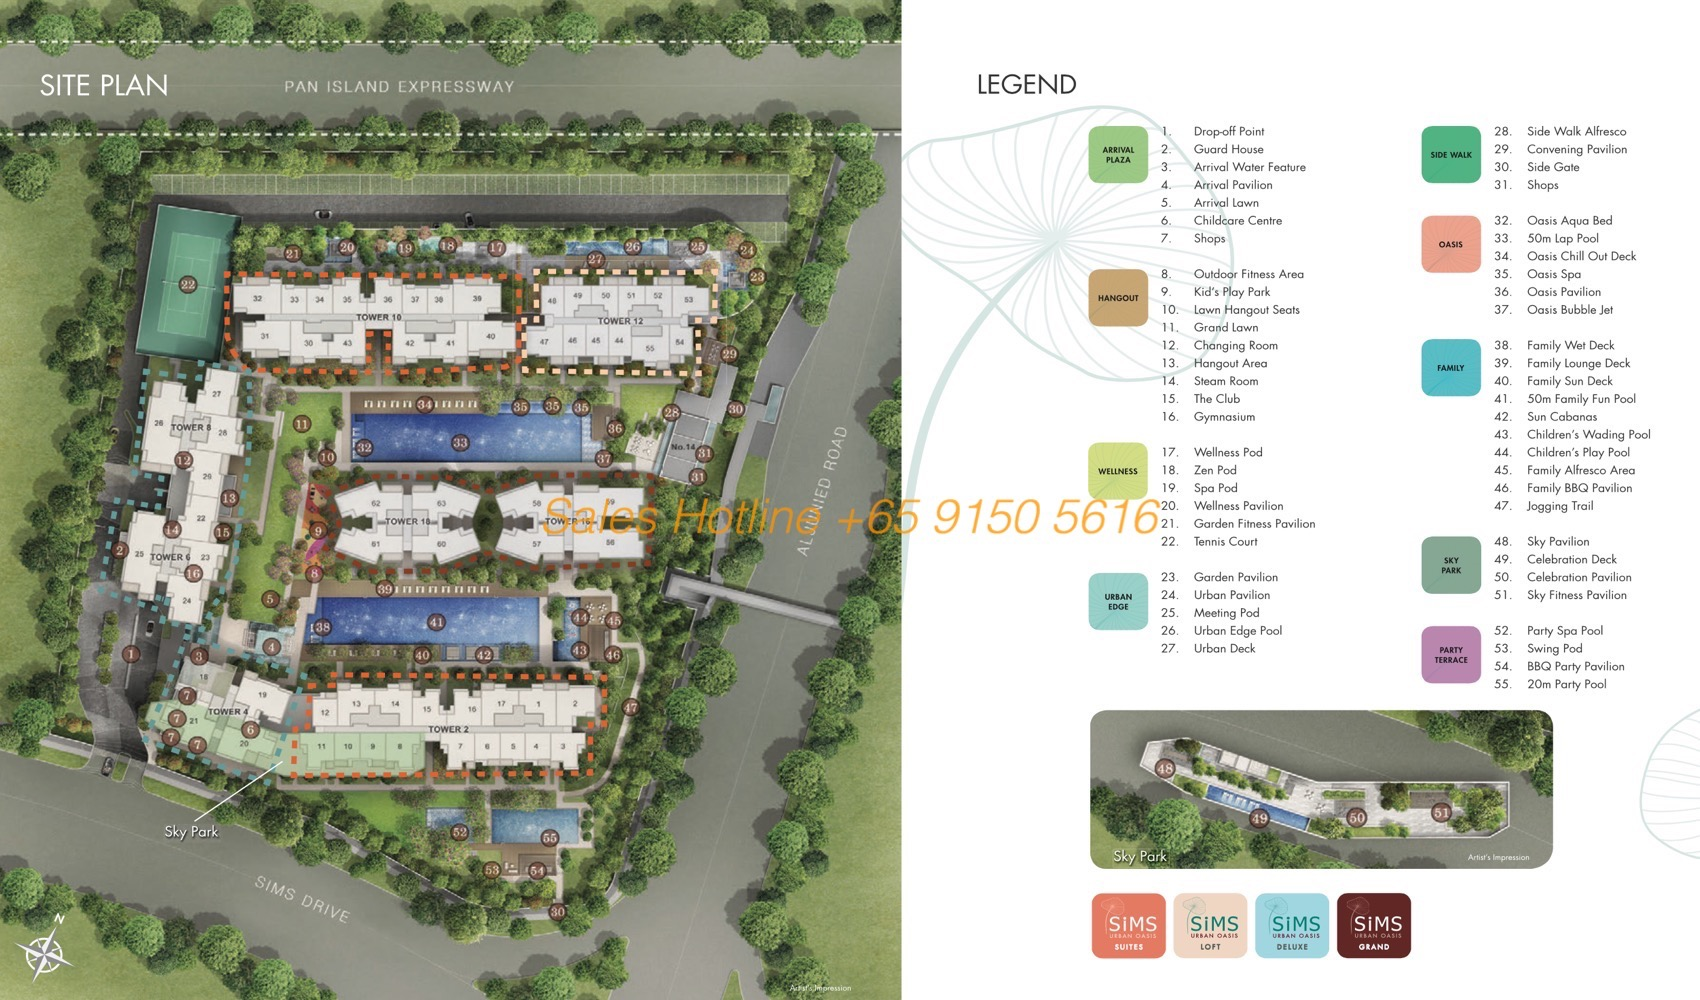 Sims Urban Oasis - Site Plan